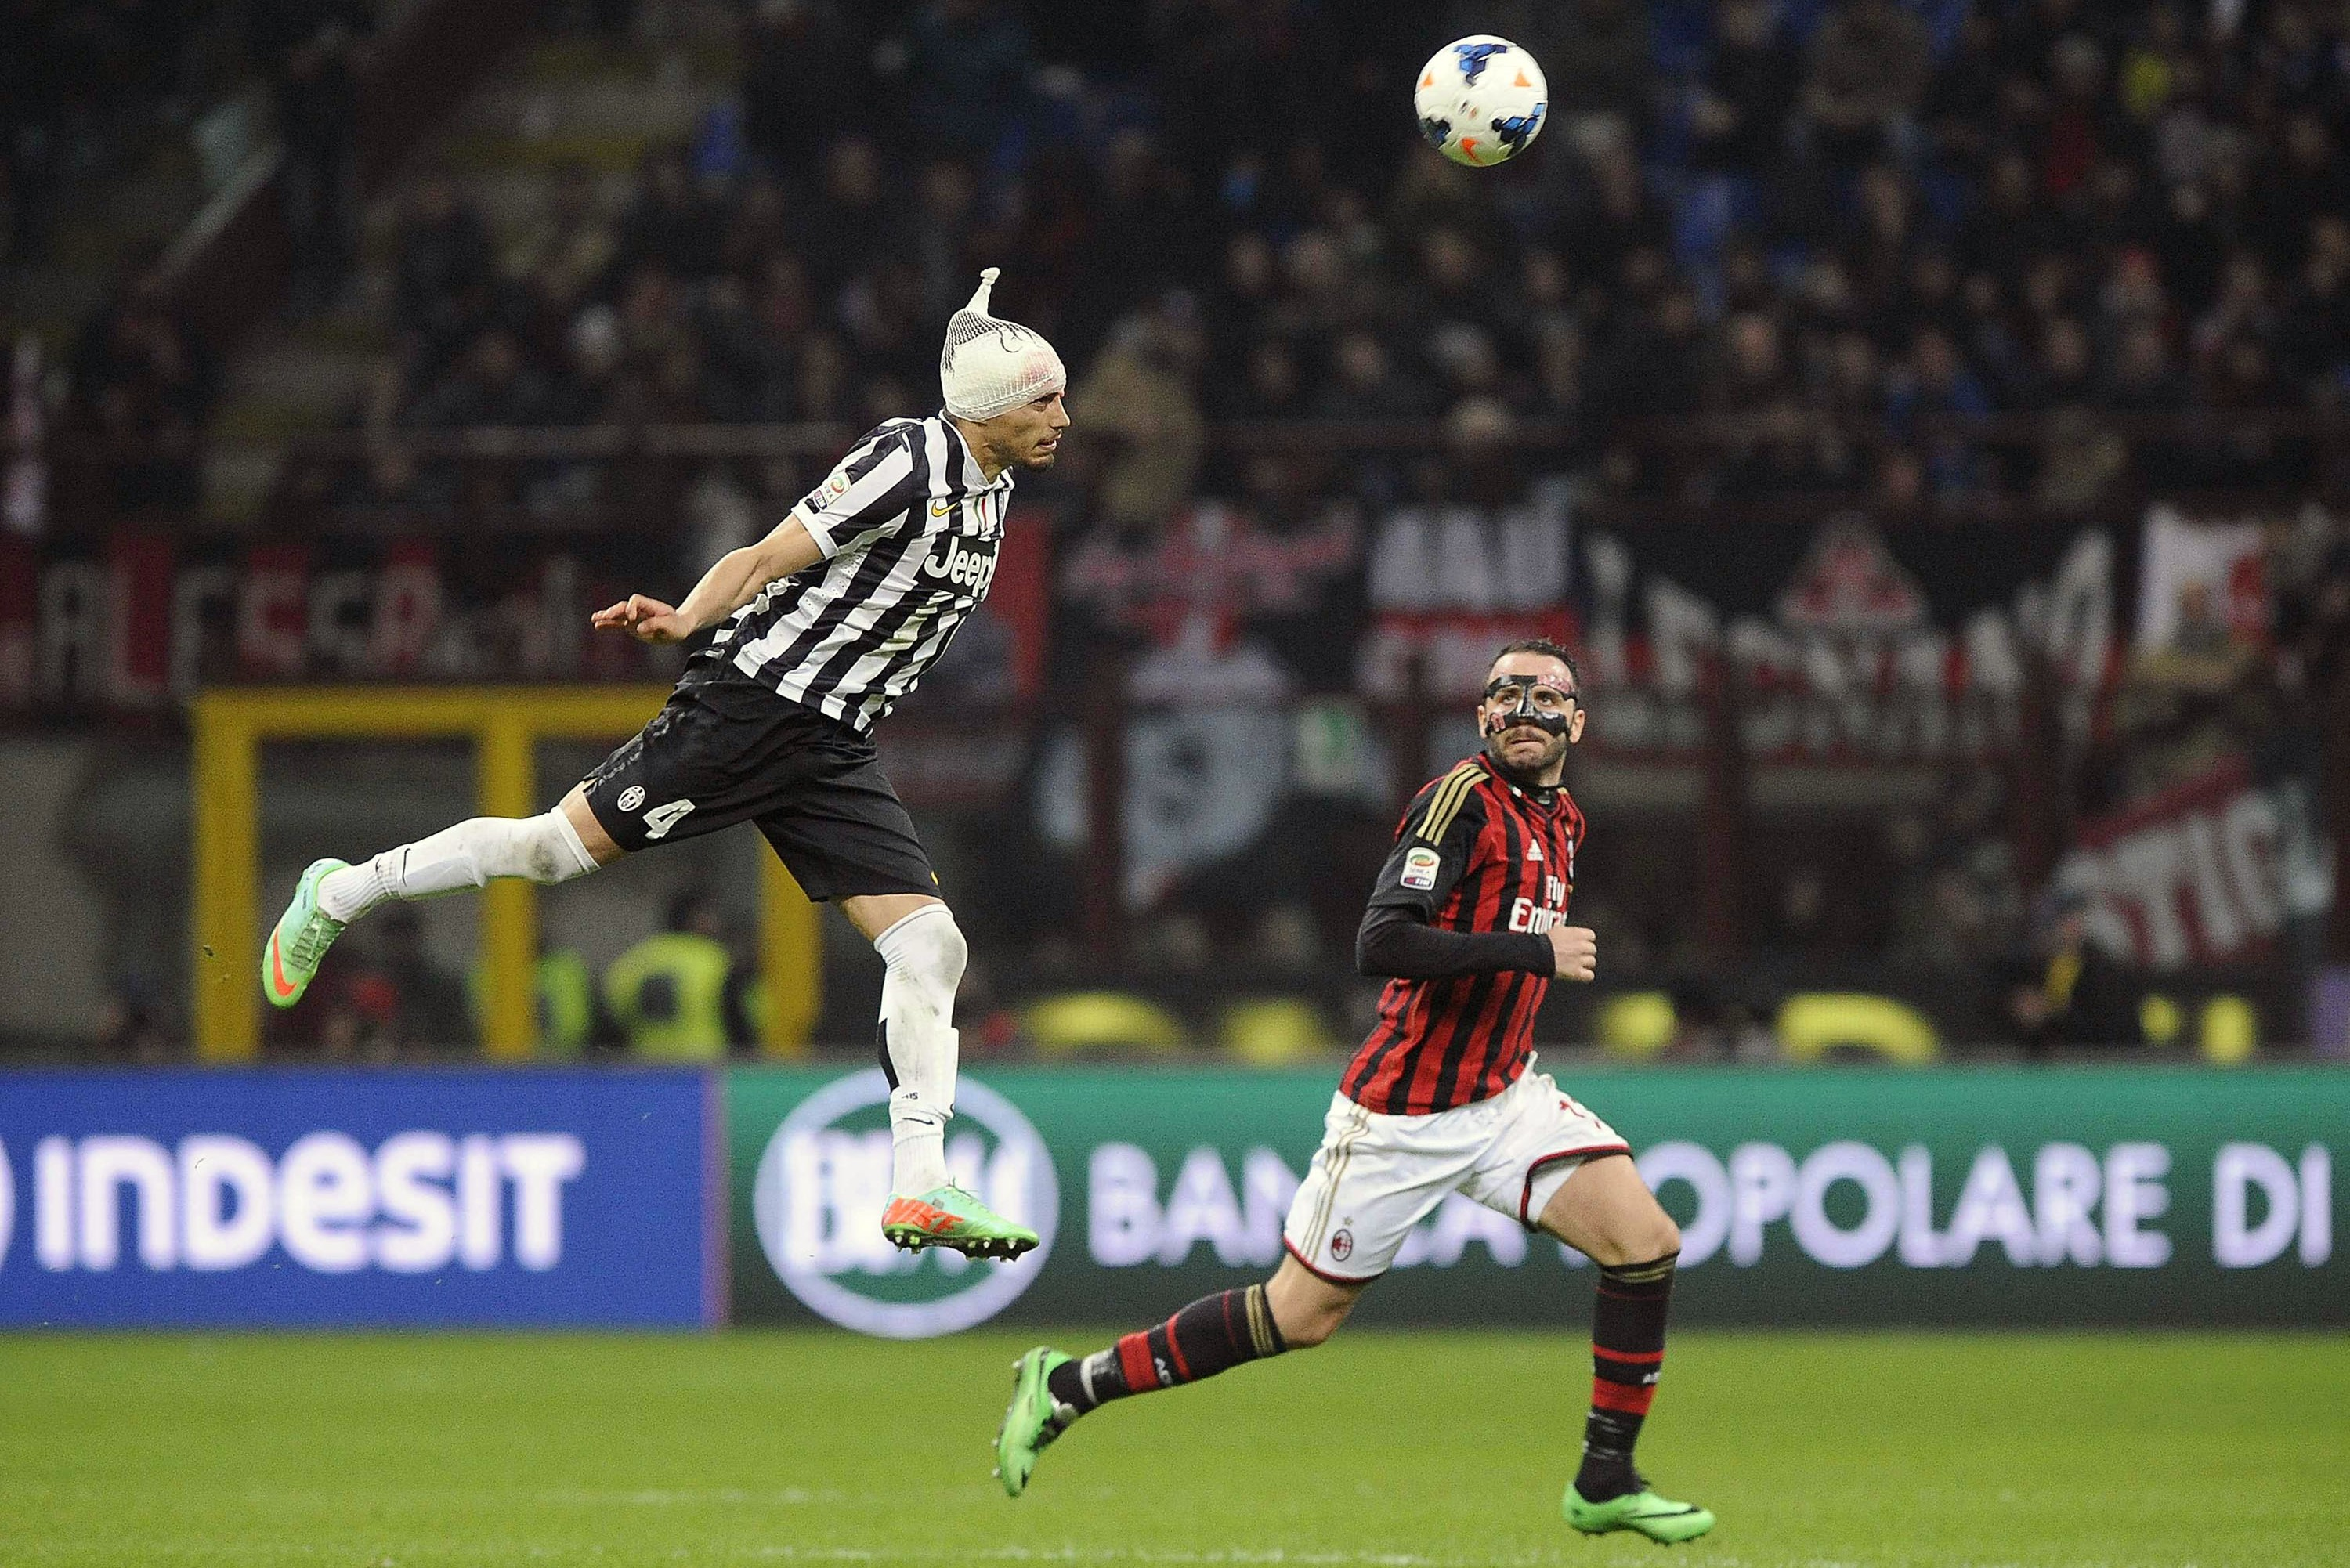 Juventus' Martin Caceres, left, jumps for the ball as AC Milan's Giampaolo Pazzini looks at him during their Italian Serie A soccer match at the San Siro stadium in Milan March 2, 2014.